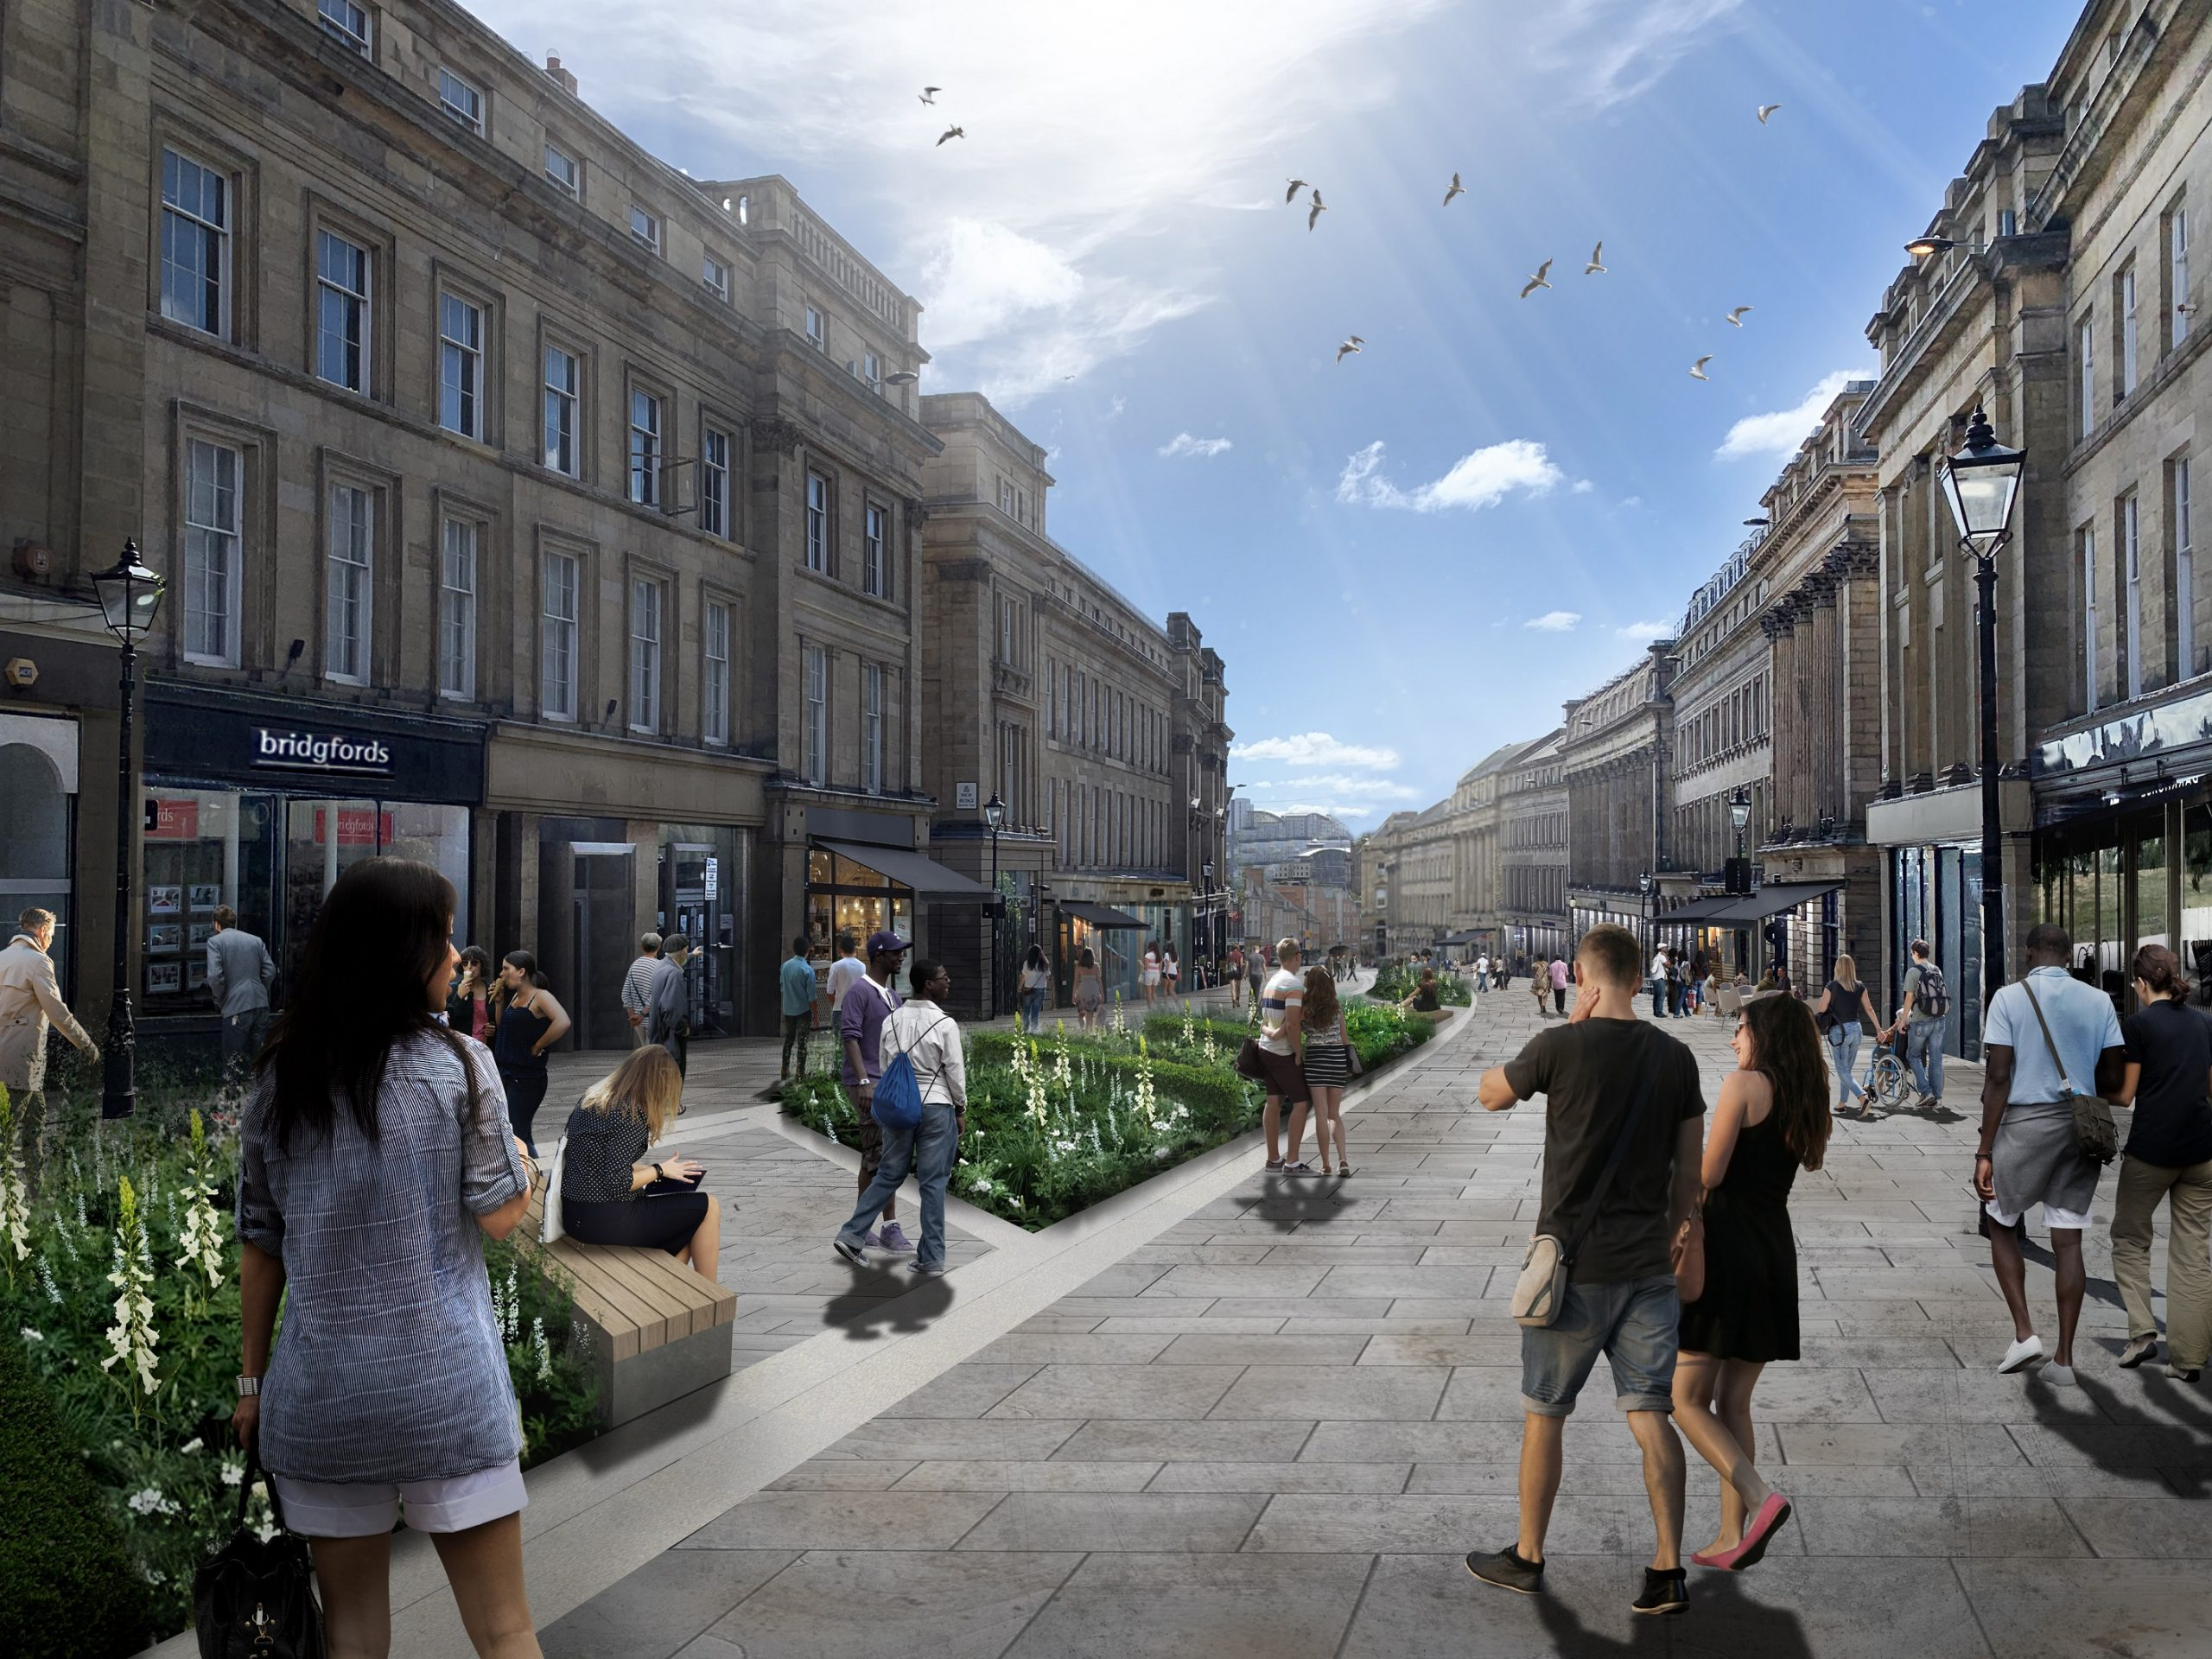 Long pedestrianised street, running through the middle are green bushes. The building running up the sides of the street are tall, old sandstones. The image is partially augmented to show what it could look like when transformation is finished.